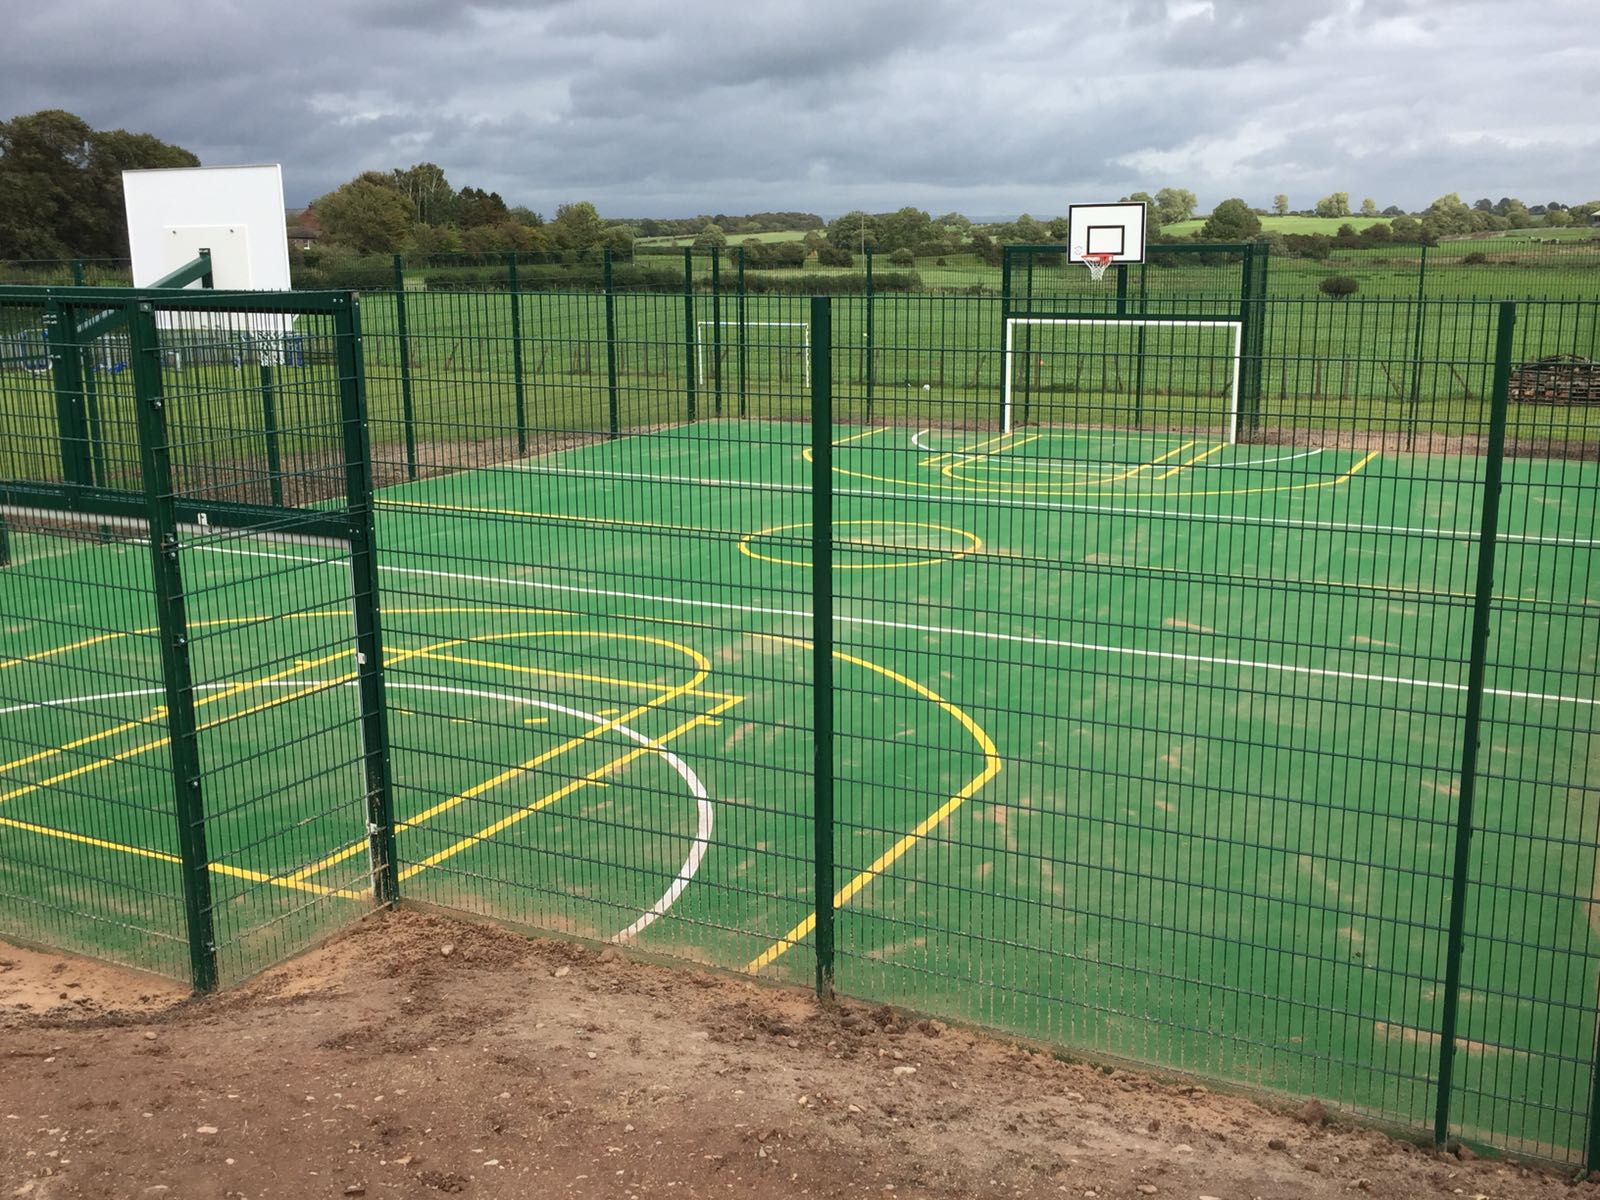 Play surfacing fitted by Bingham Ground Services